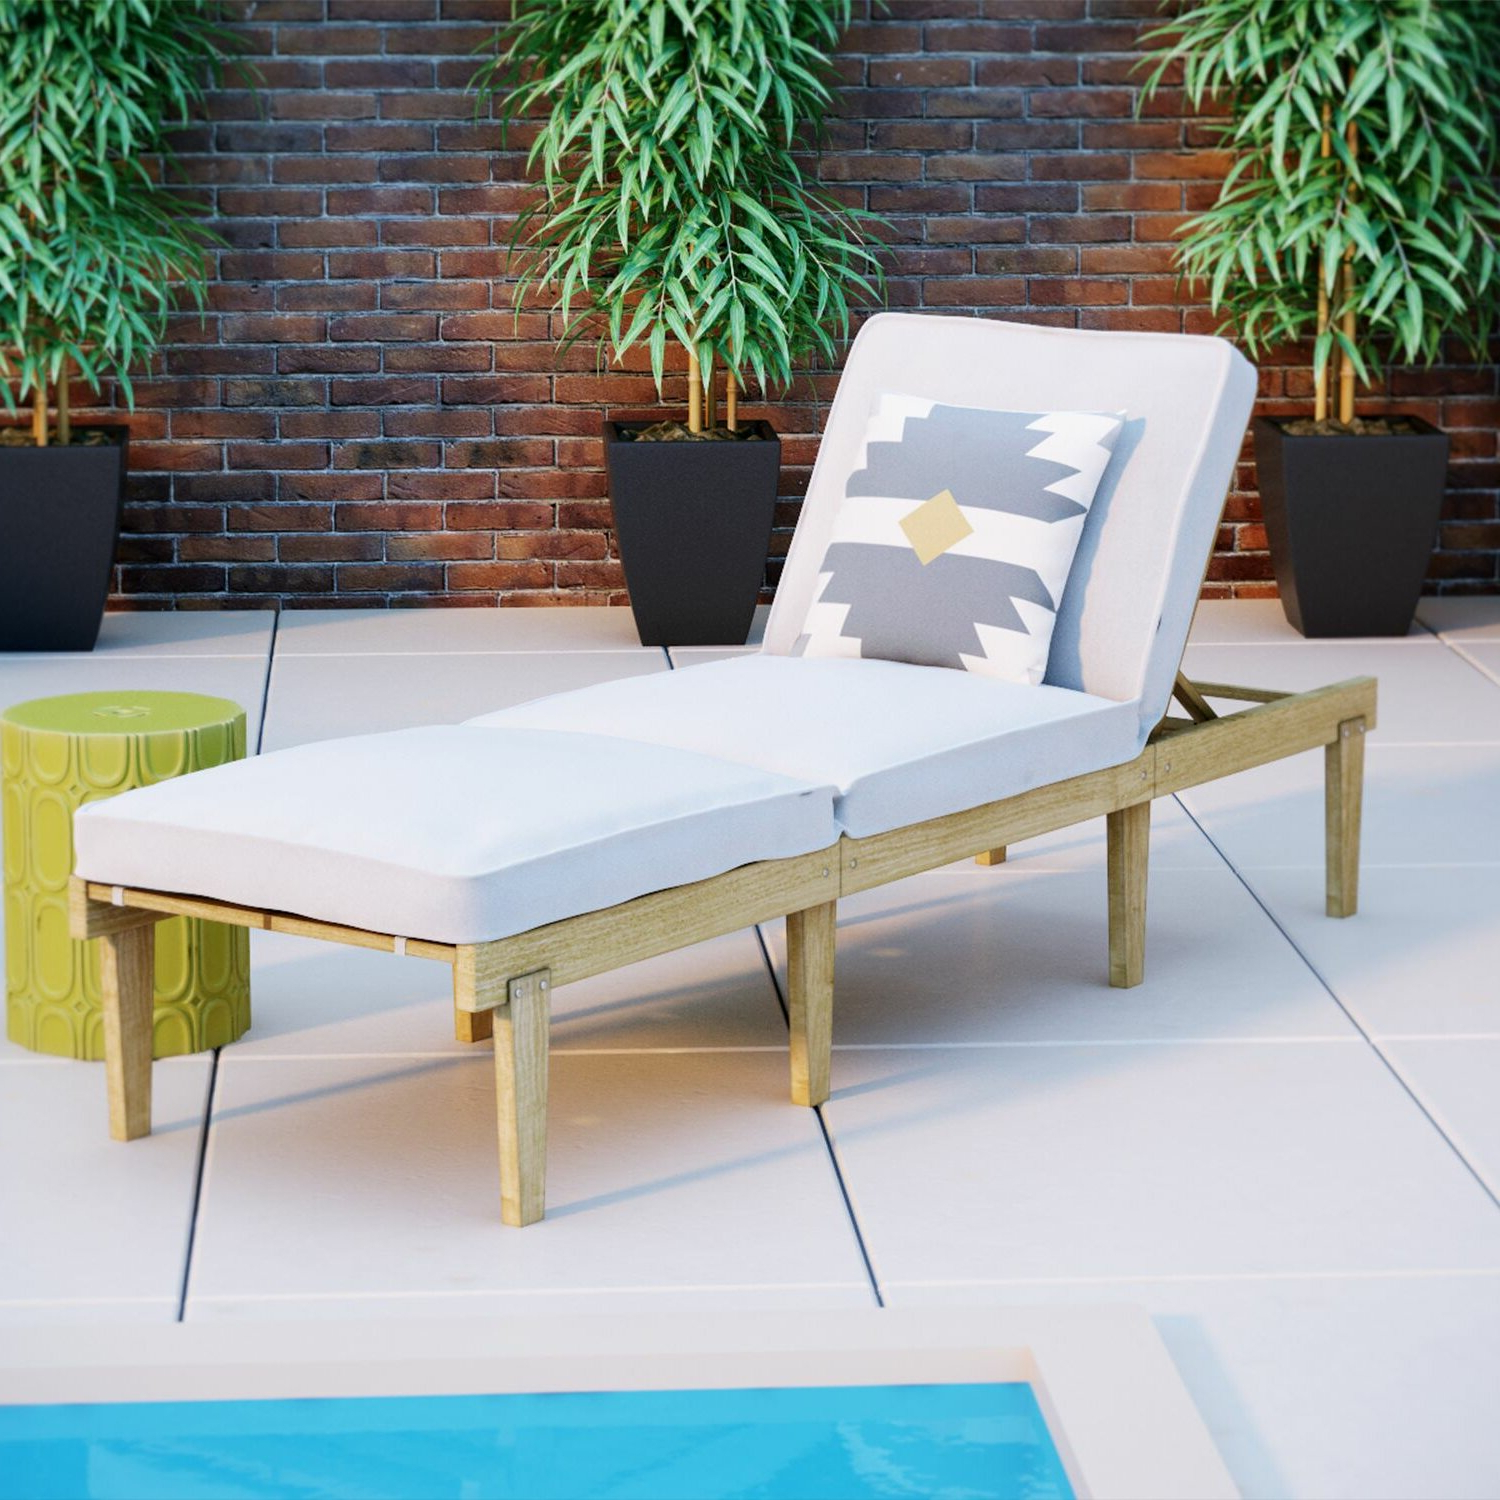 Teak Chaise Loungers Inside Famous Ardsley Reclining Teak Chaise Lounge With Cushion (View 8 of 25)